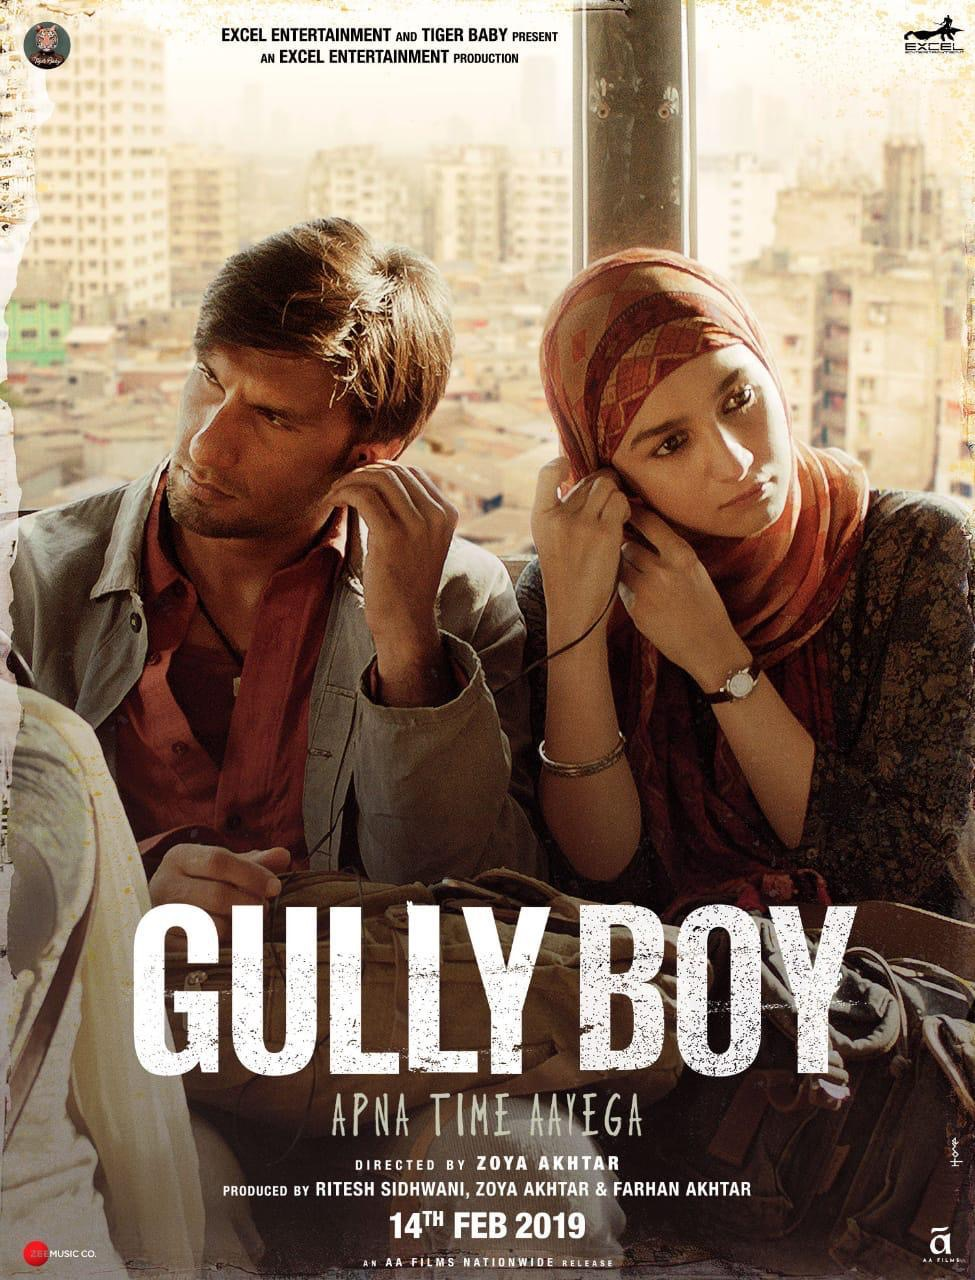 First Look: Ranveer Singh and Alia Bhatt in 'Gully Boy'